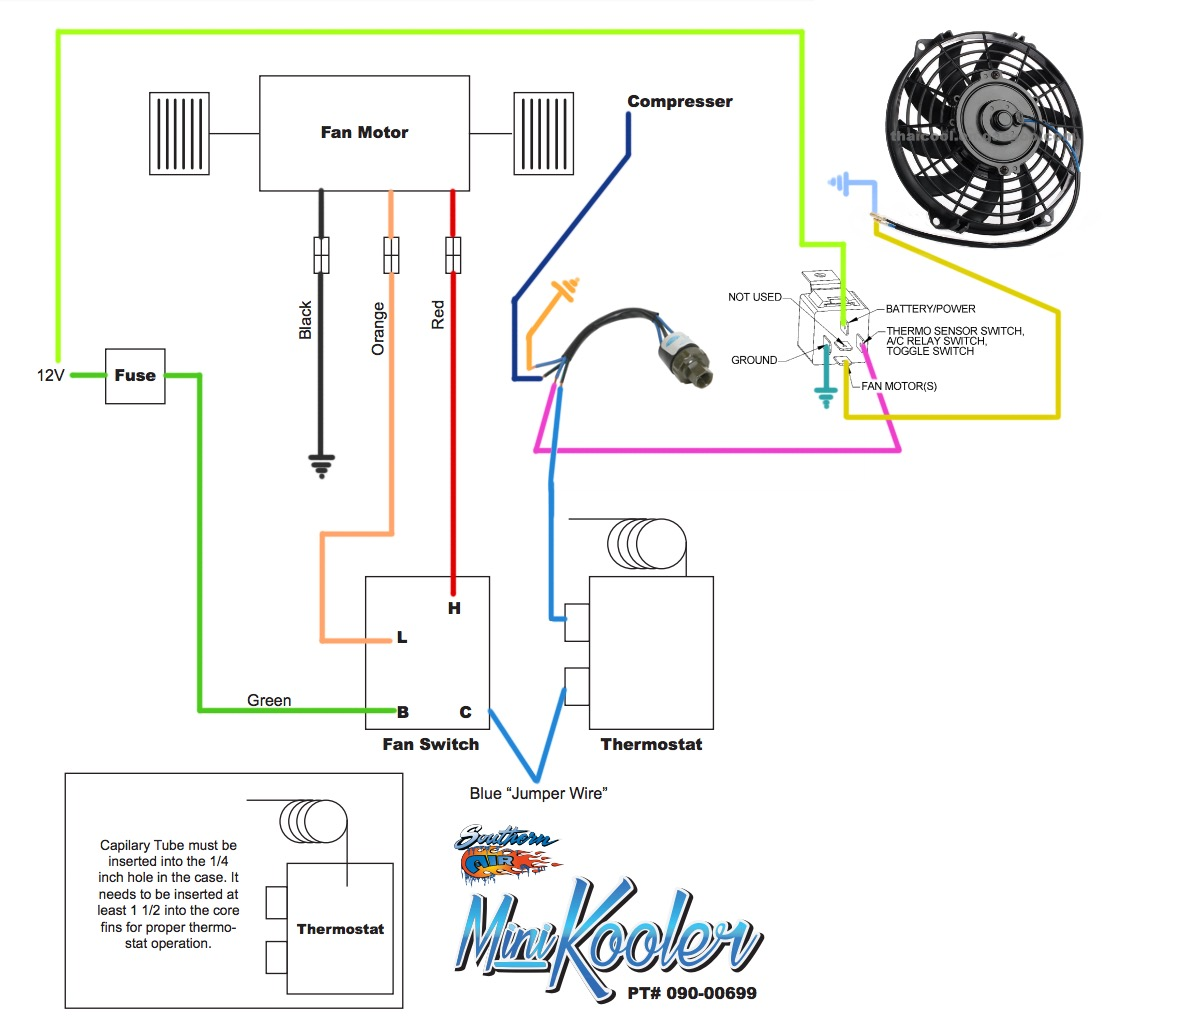 Ac Binary Switch Wiring Diagram - Two Stroke Engine Diagram -  2006cruisers.tukune.jeanjaures37.fr | Tufloc Wiring Diagram |  | Wiring Diagram Resource